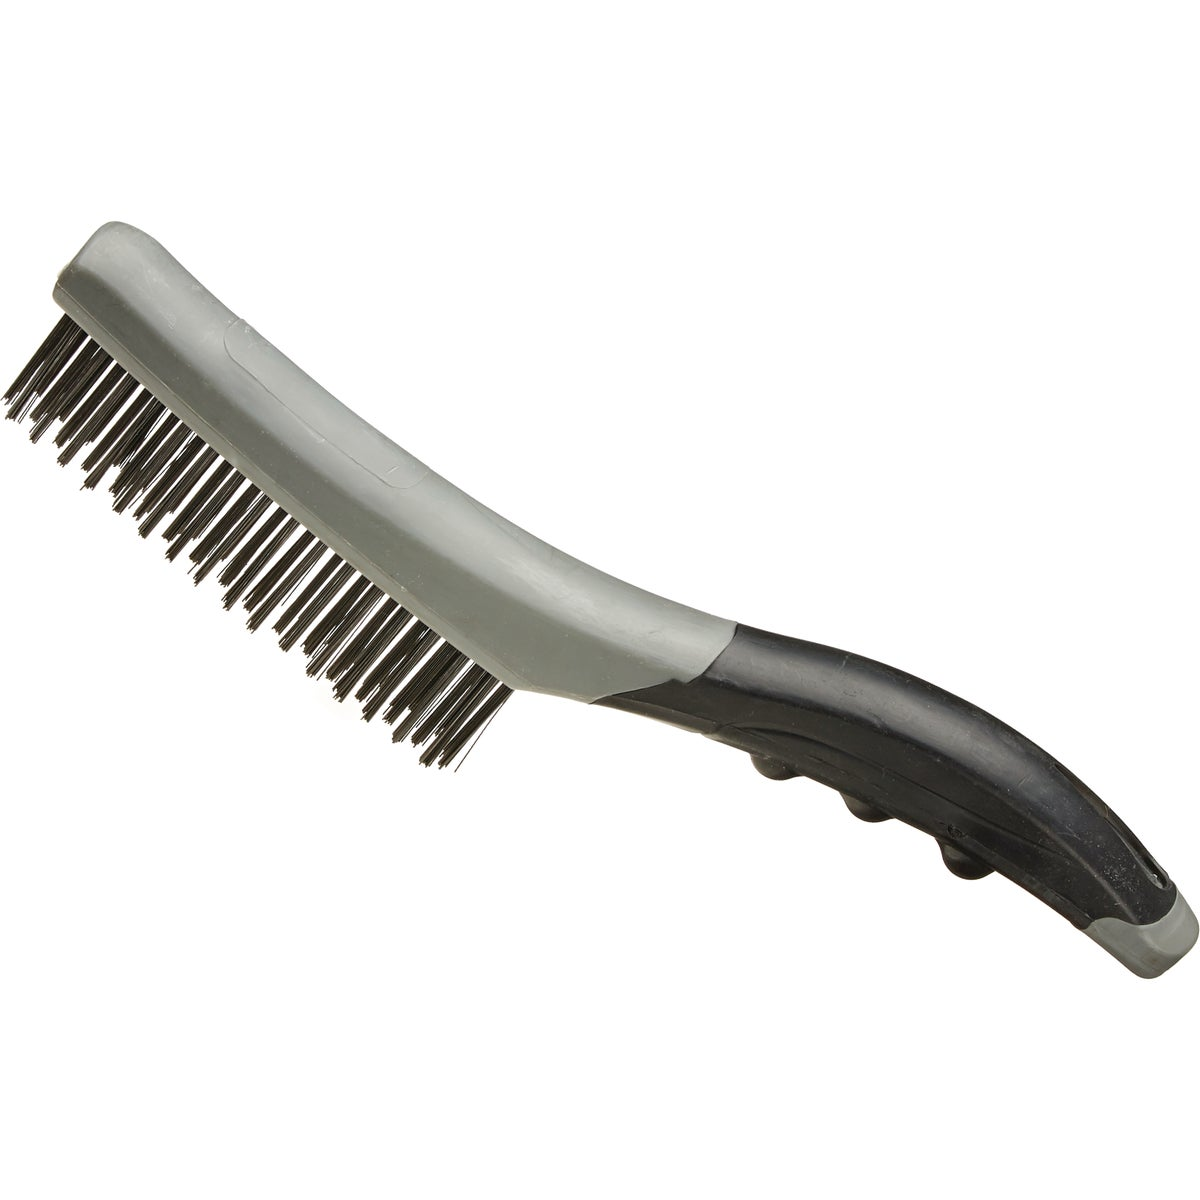 Hyde Mfg. SHOE HANDLE WIRE BRUSH 46802